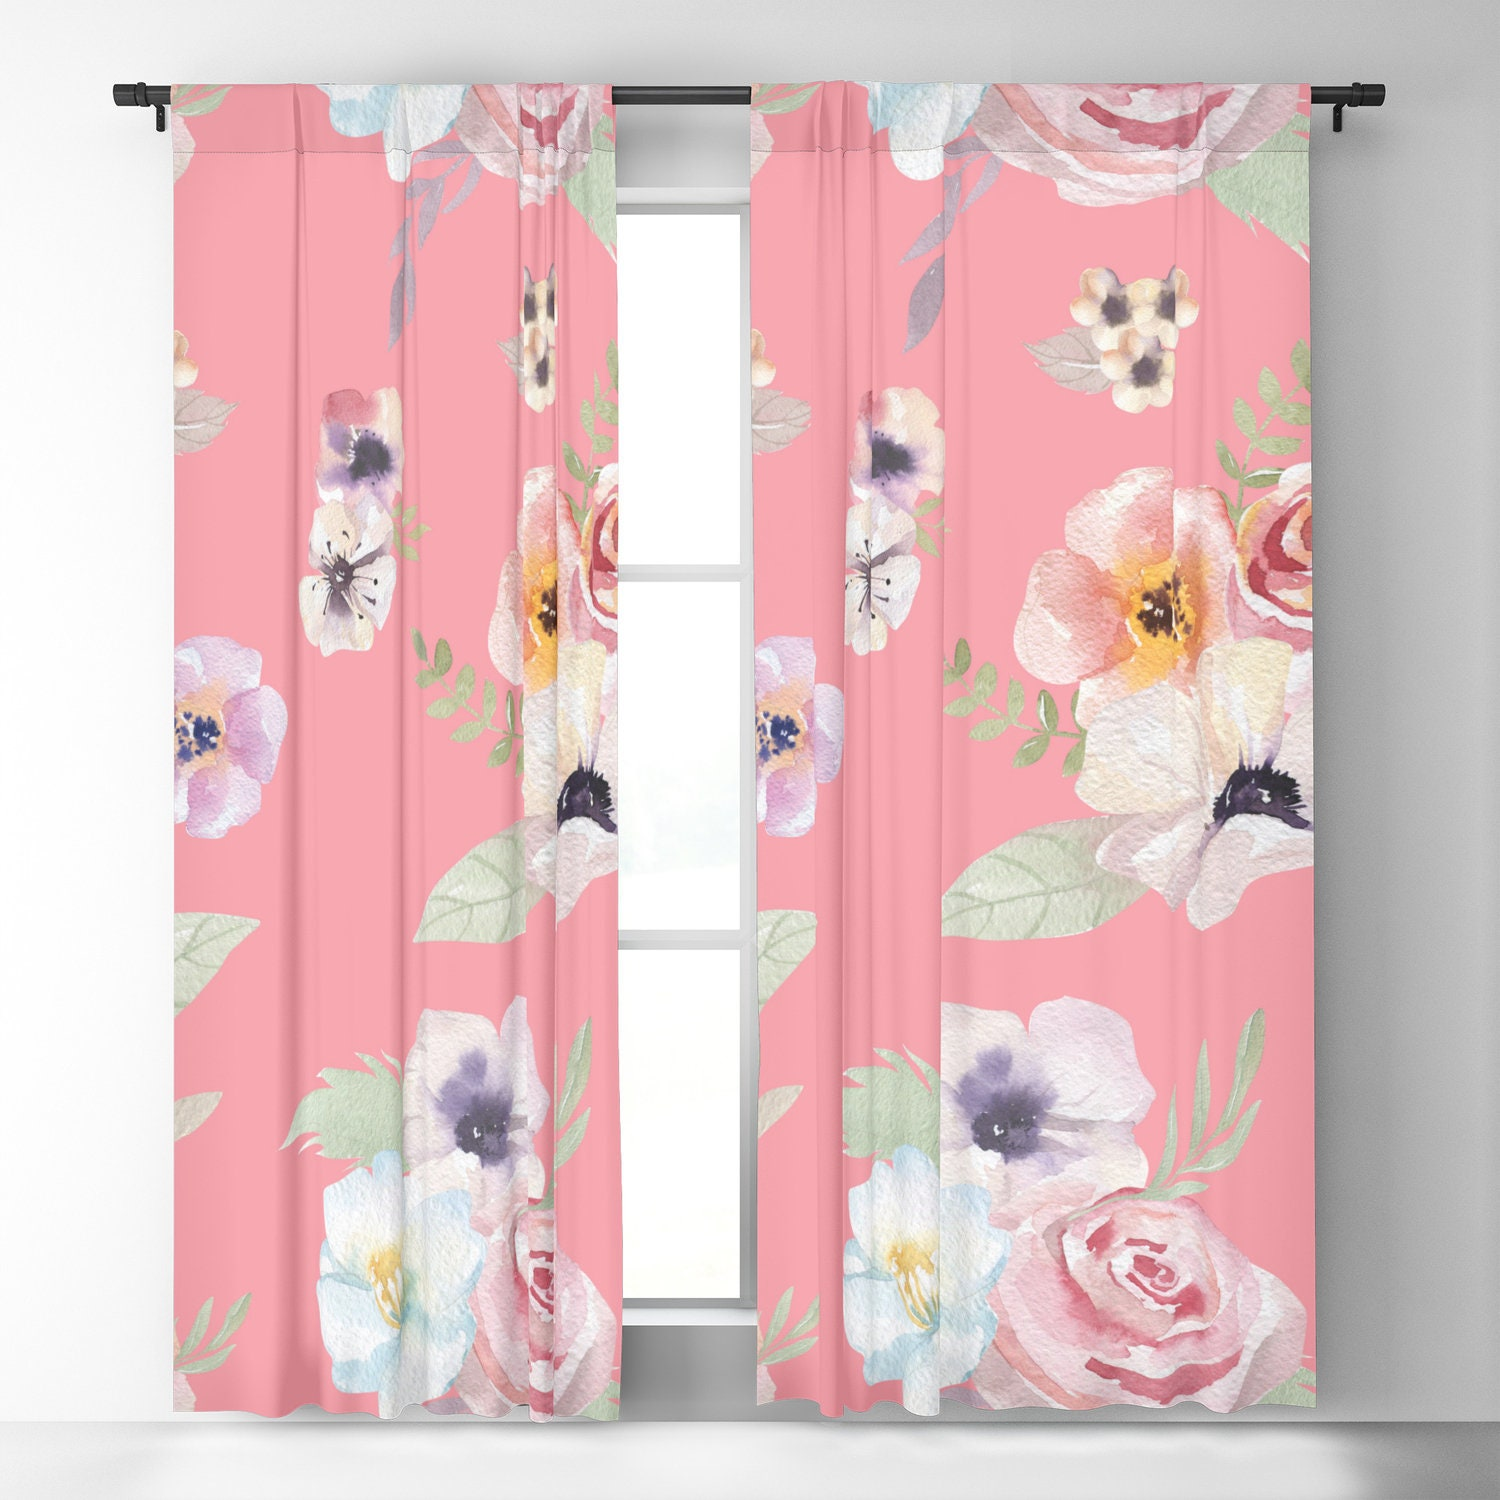 Window Curtains Watercolor Floral I Bright Pink 50 X 84 Or 96 Length Blackout Or Sheer Rod Pocket Bedroom Nursery Playroom